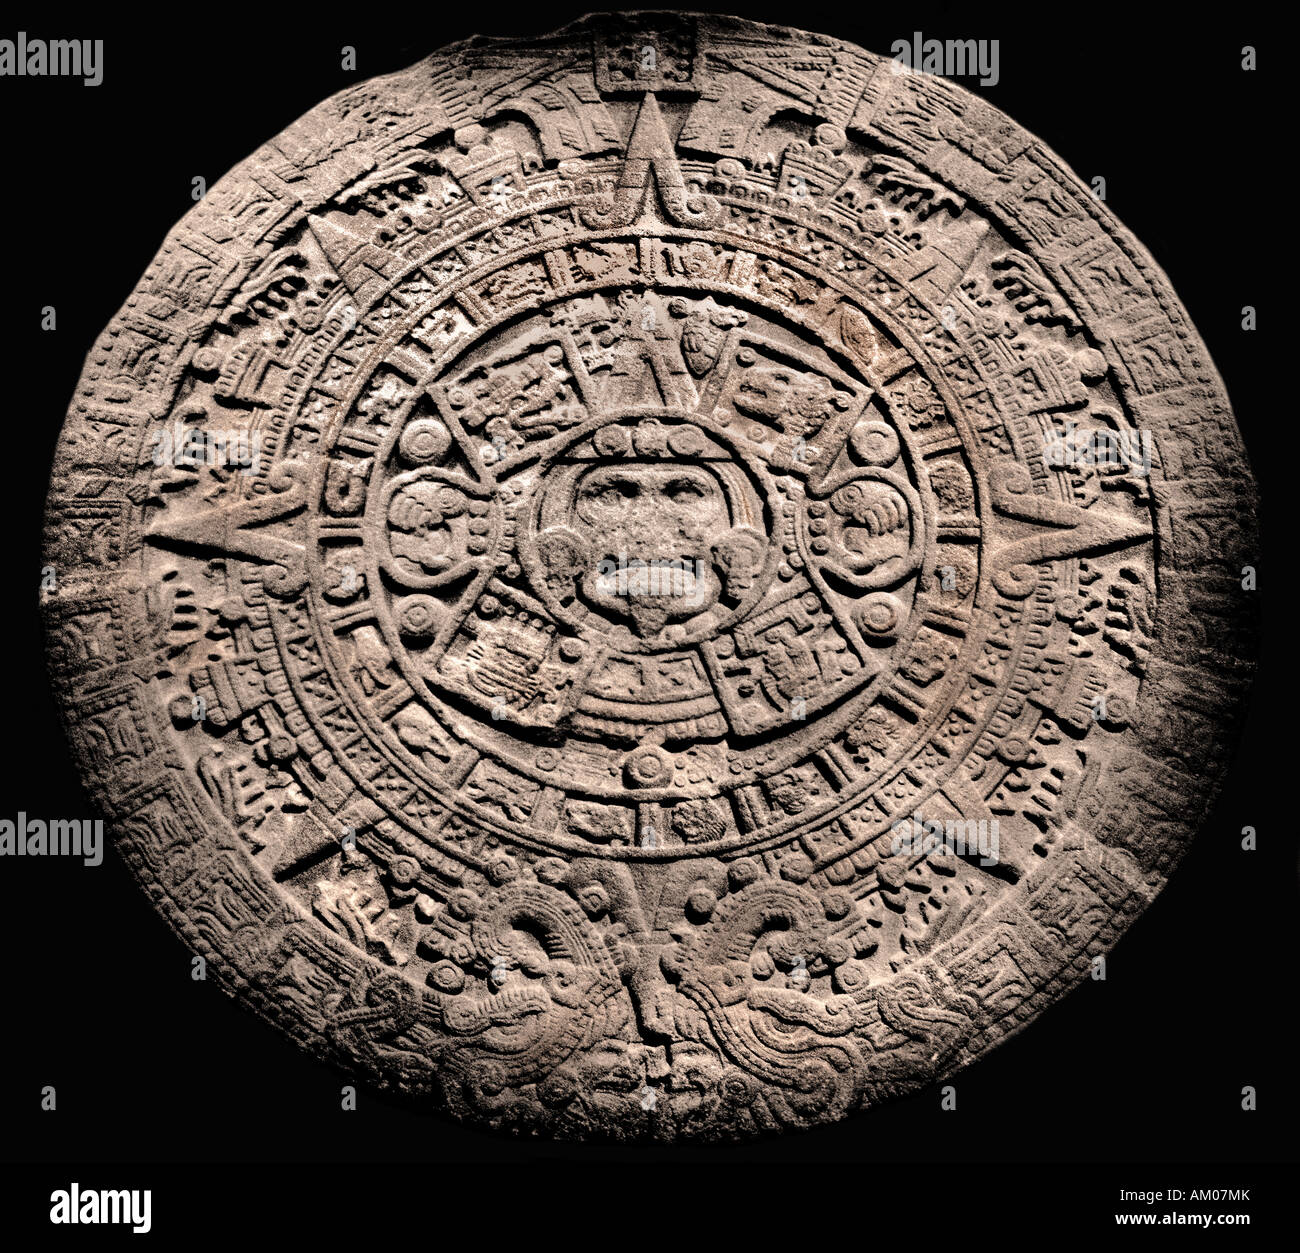 aztec sun god calendar stock photos u0026 aztec sun god calendar stock